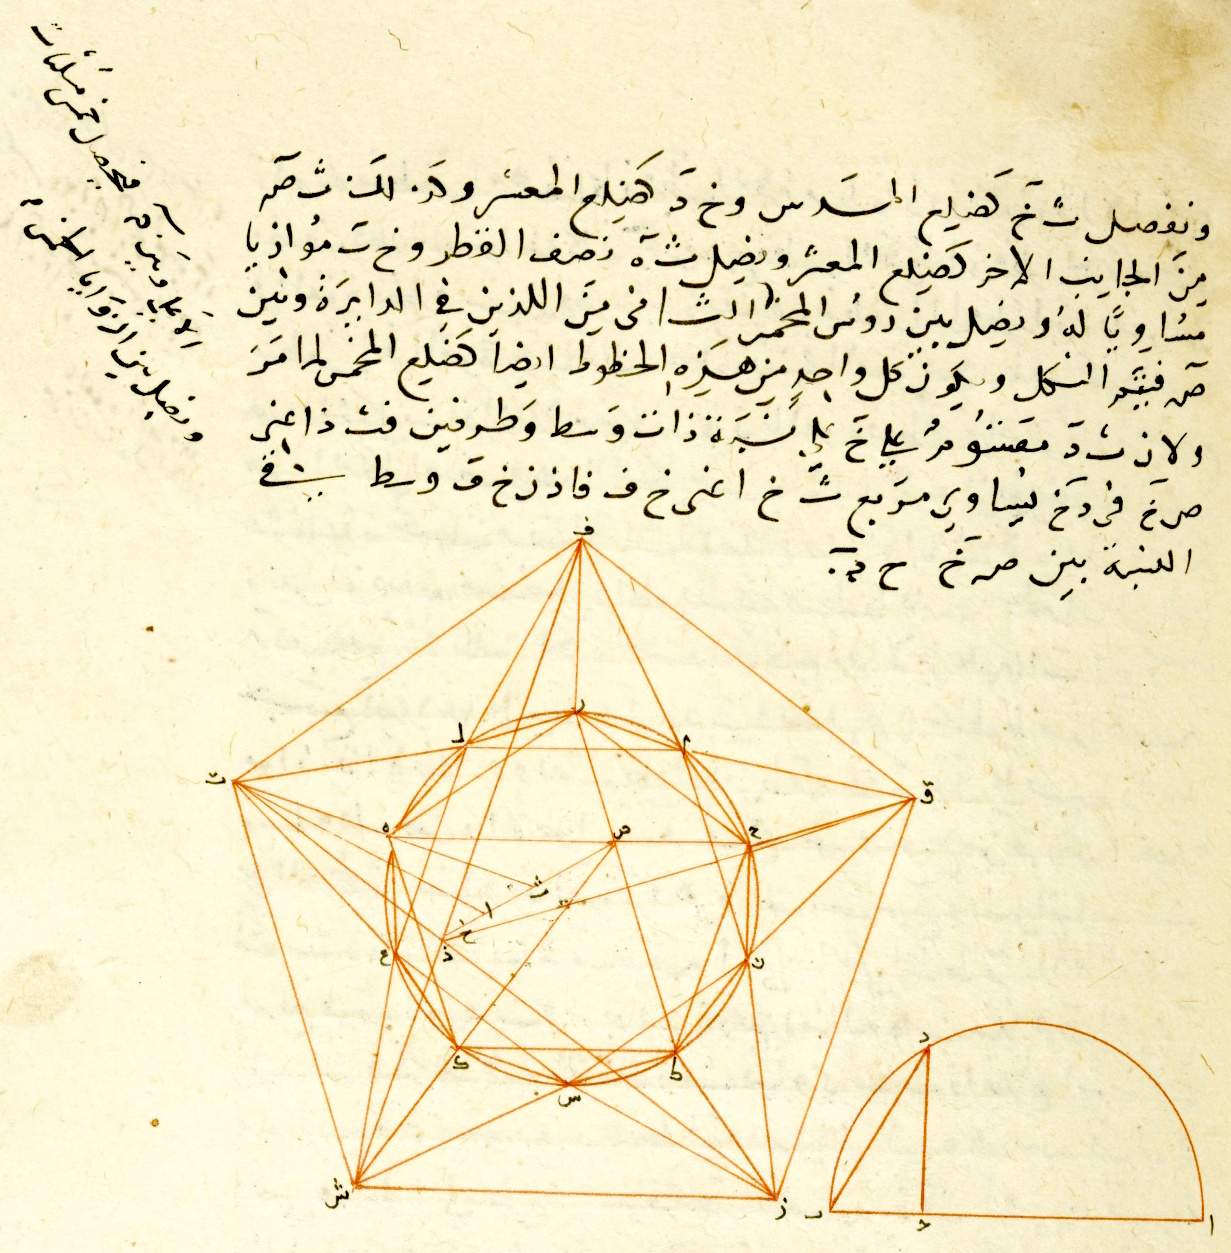 Part of a copy of an edition of Euclid's Elements by the 13th century Persian mathematician Nasīr al-Dīn al-Tūsī.